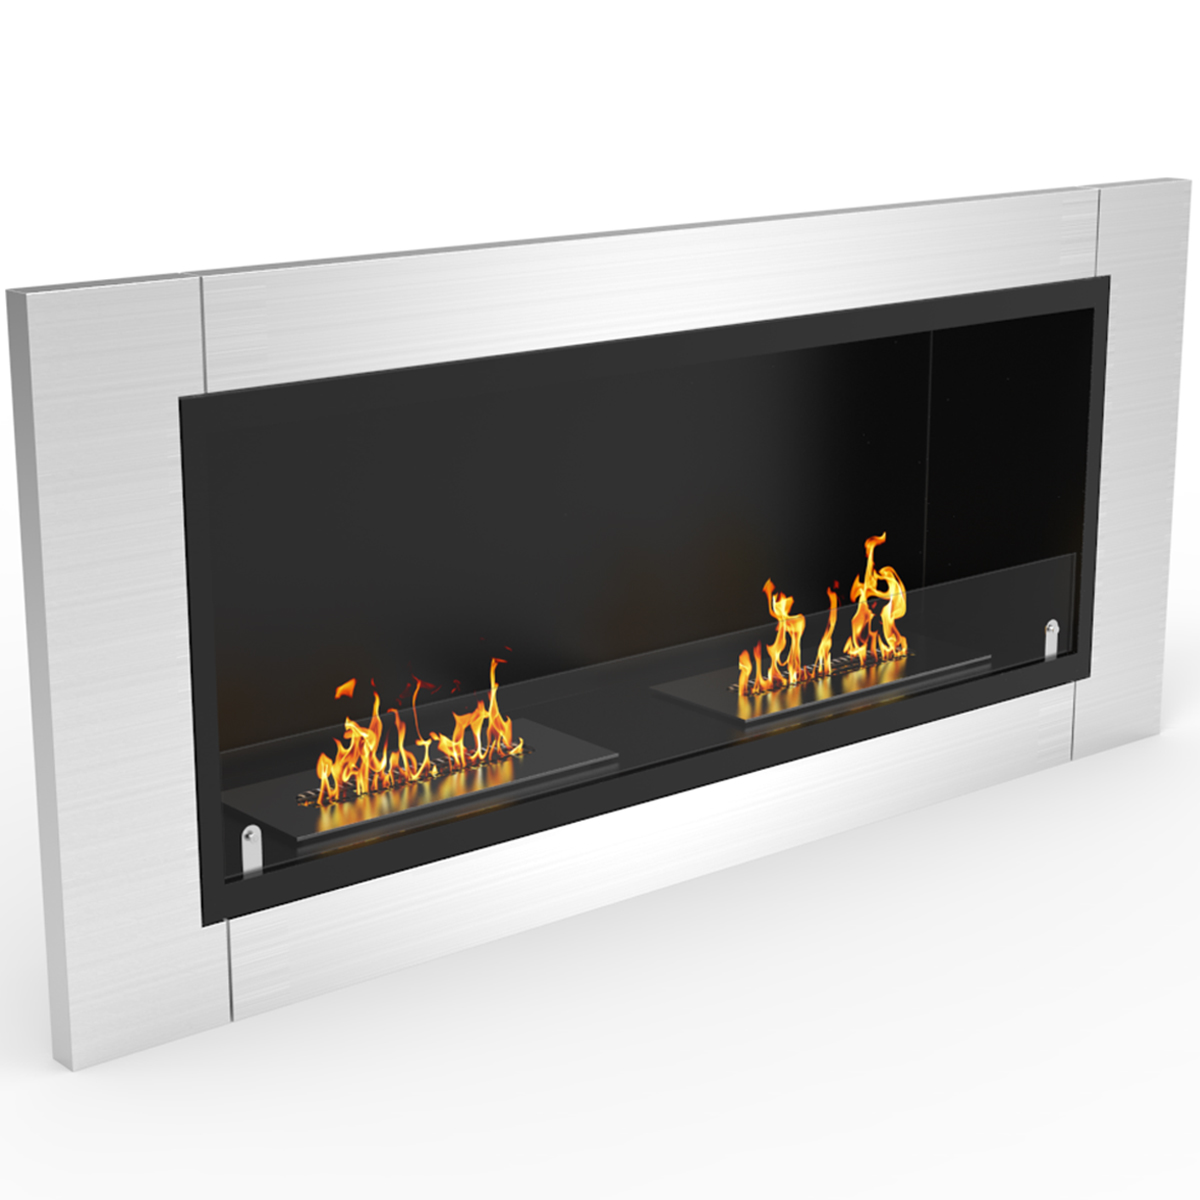 fargo 43 inch ventless built in recessed bio ethanol wall mounted